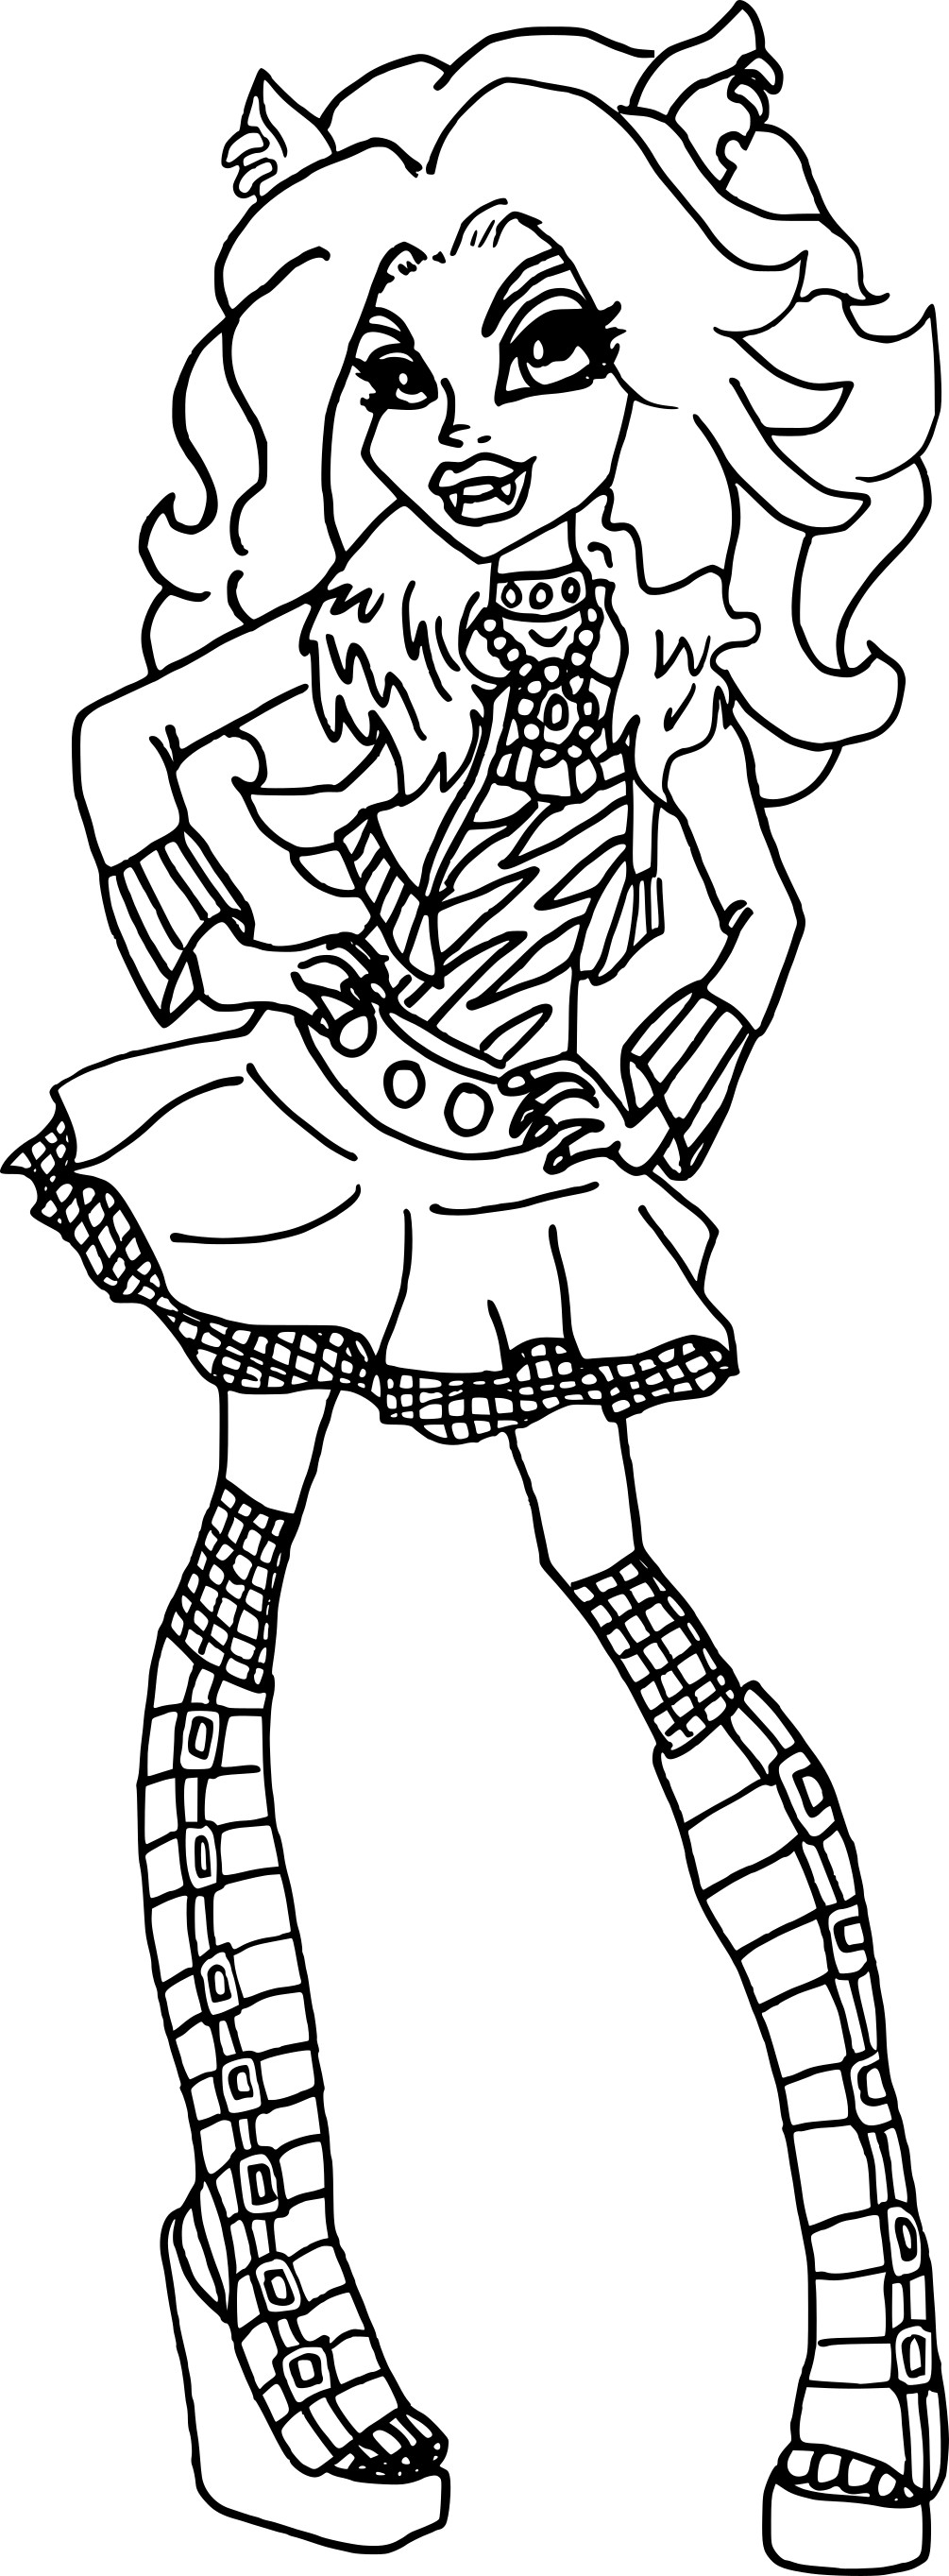 Nouveau coloriage clawdeen monster high - Coloriage de monster ...